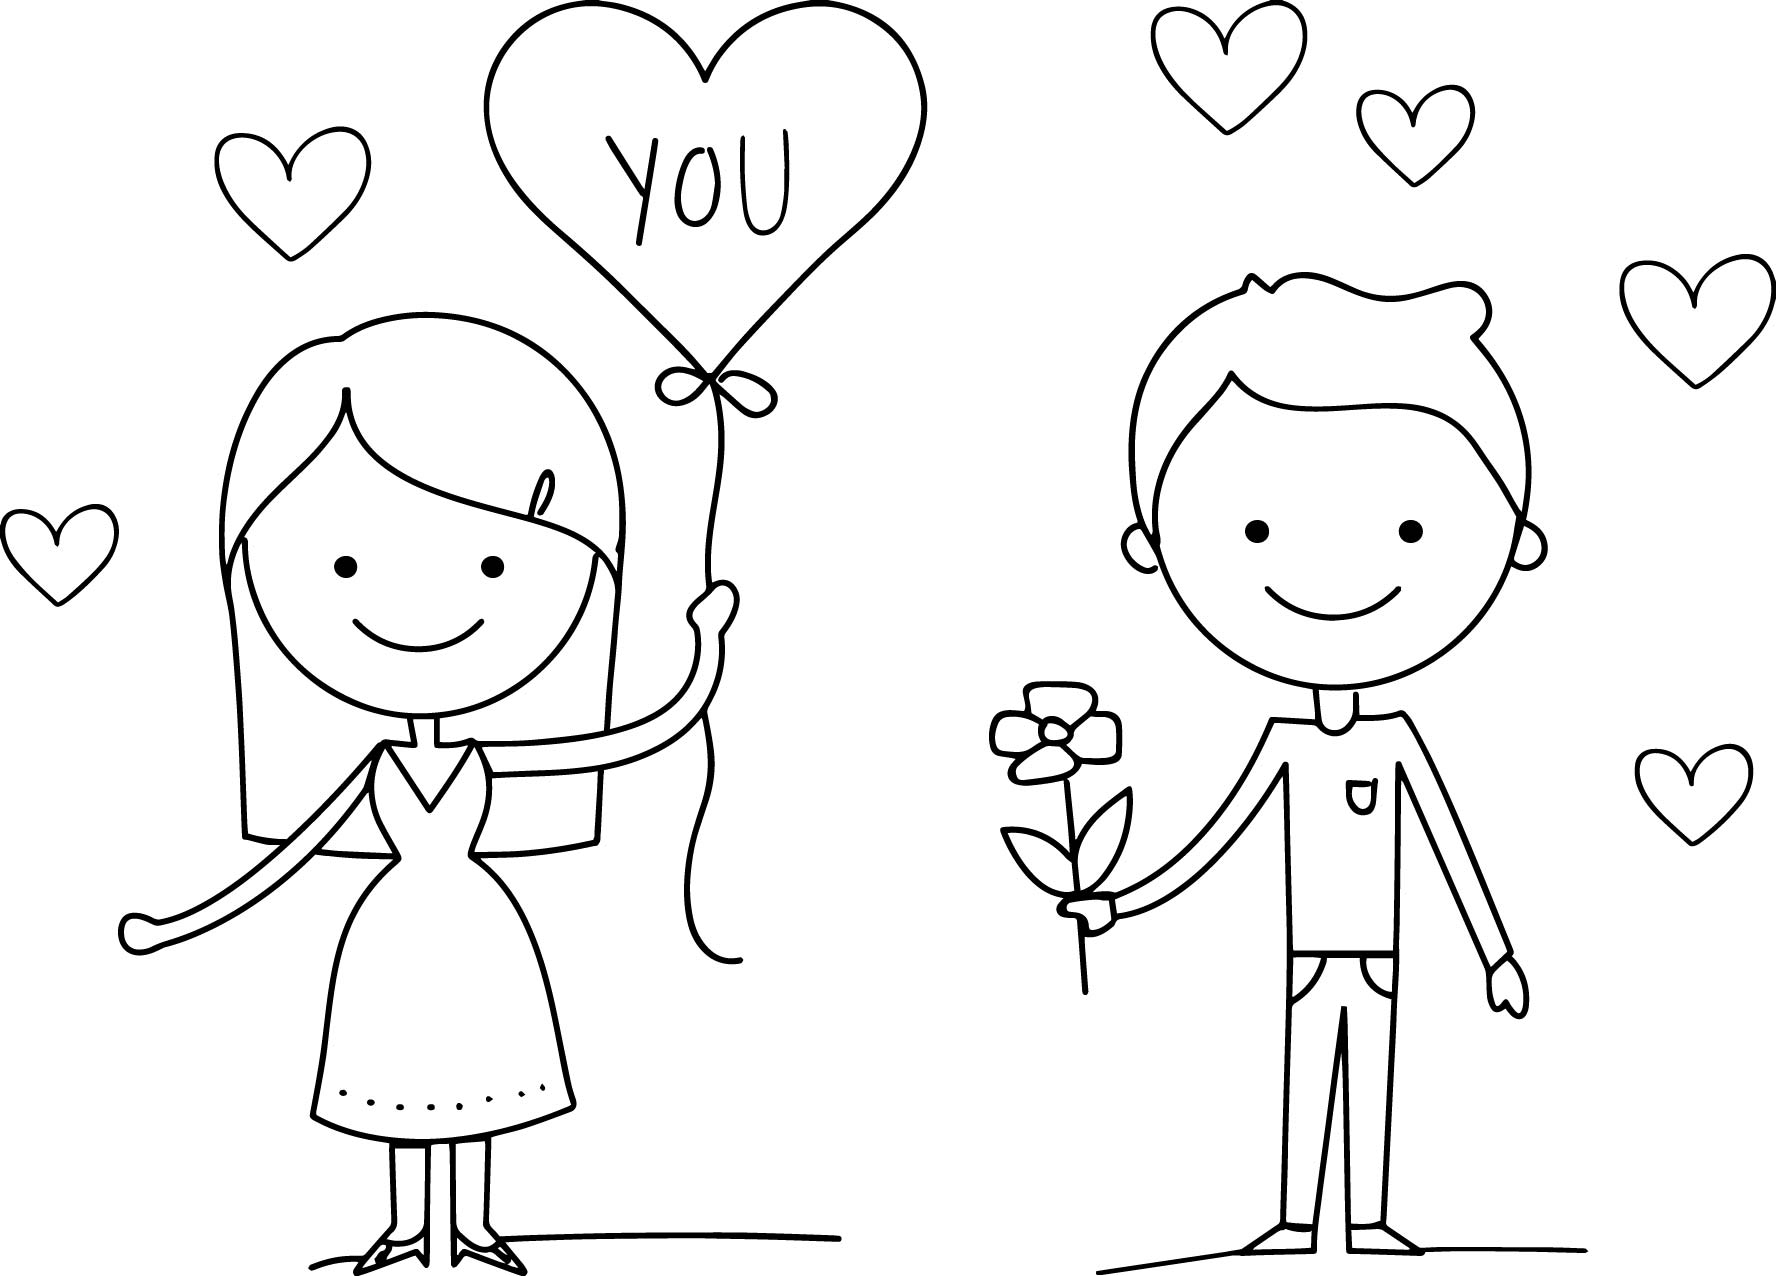 Love Couple Valentine Day Coloring Page Wecoloringpage